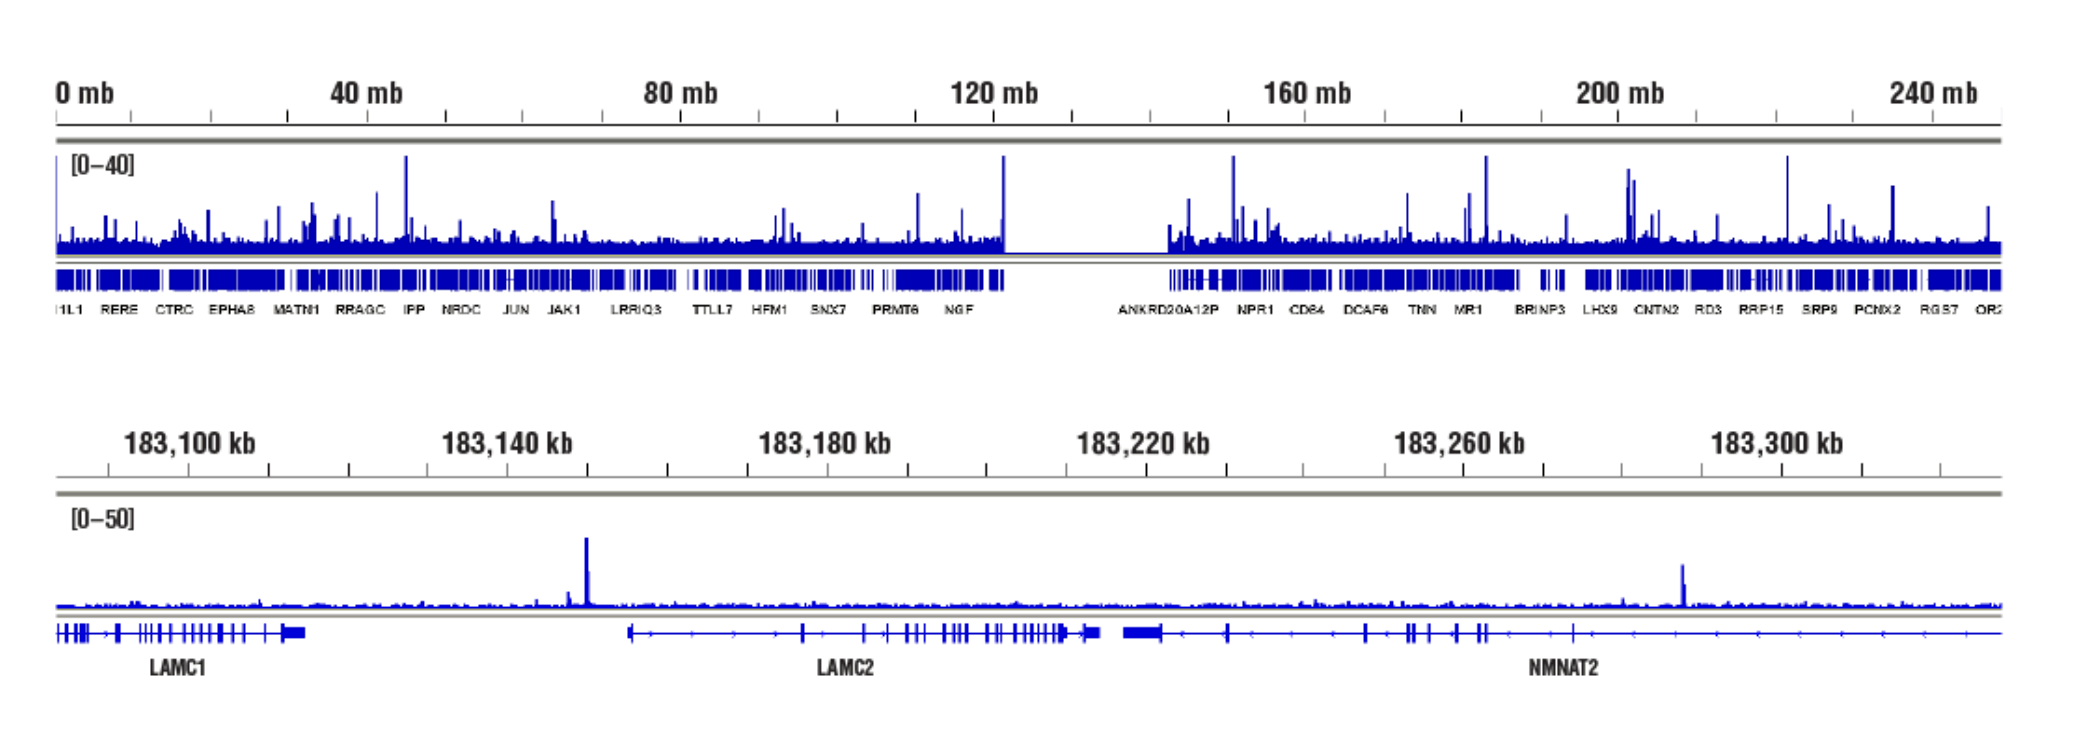 Accessible Chromatin, NF-κB p65